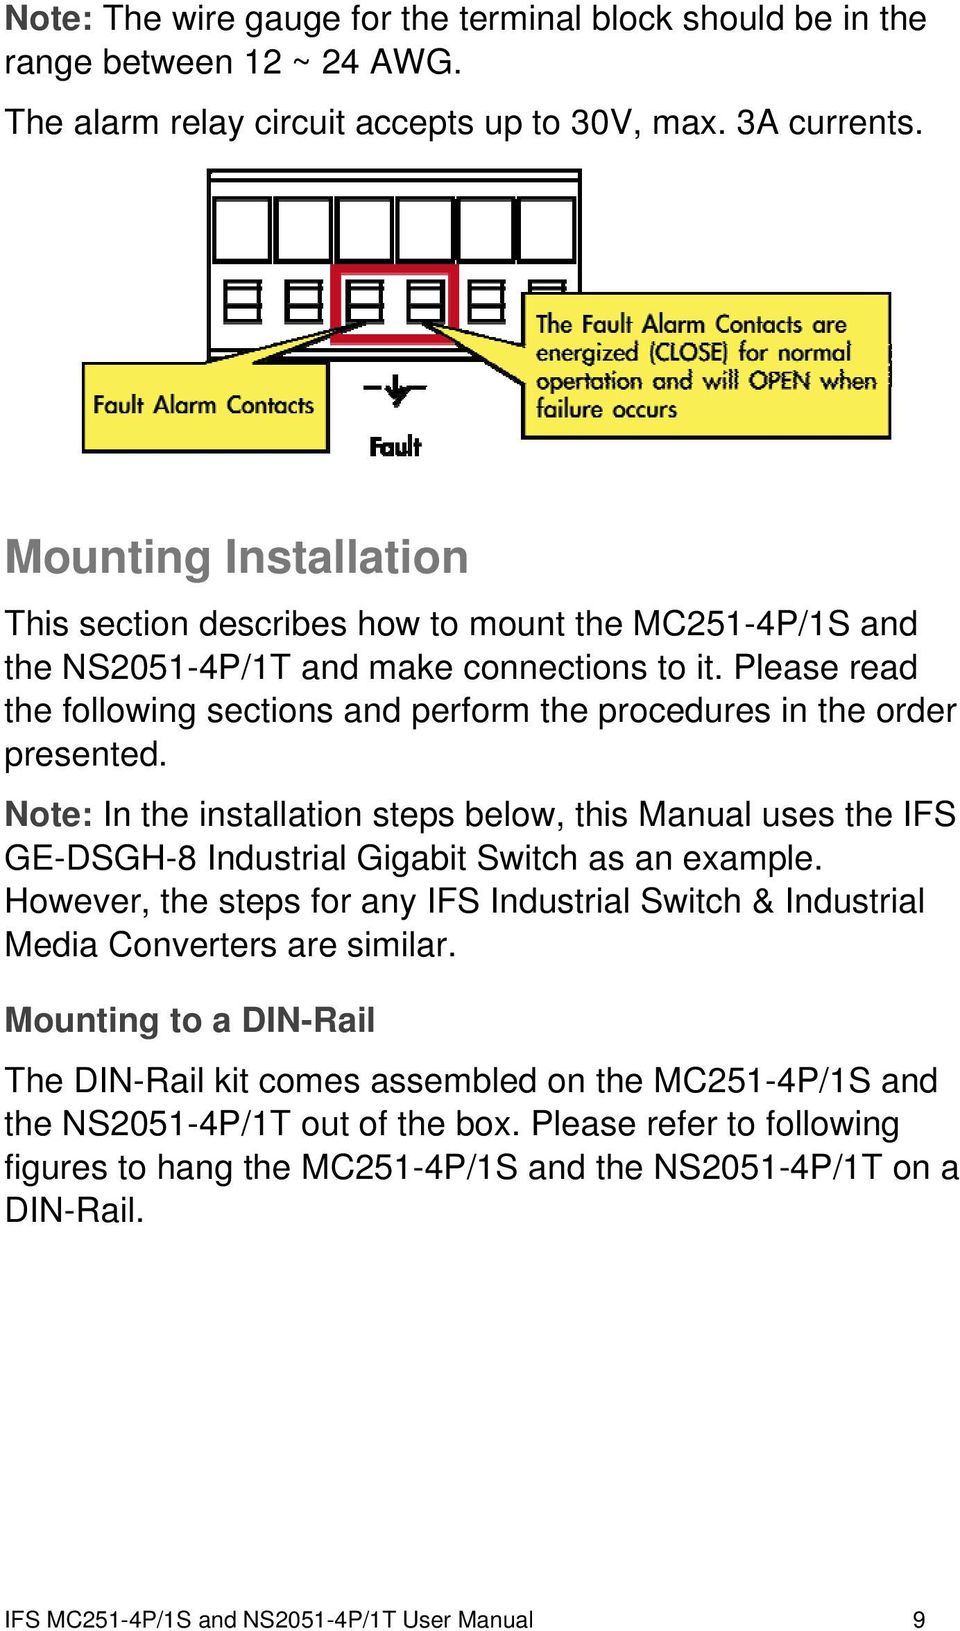 Please read the following sections and perform the procedures in the order presented. Note: In the installation steps below, this Manual uses the IFS GE-DSGH-8 Industrial Gigabit Switch as an example.